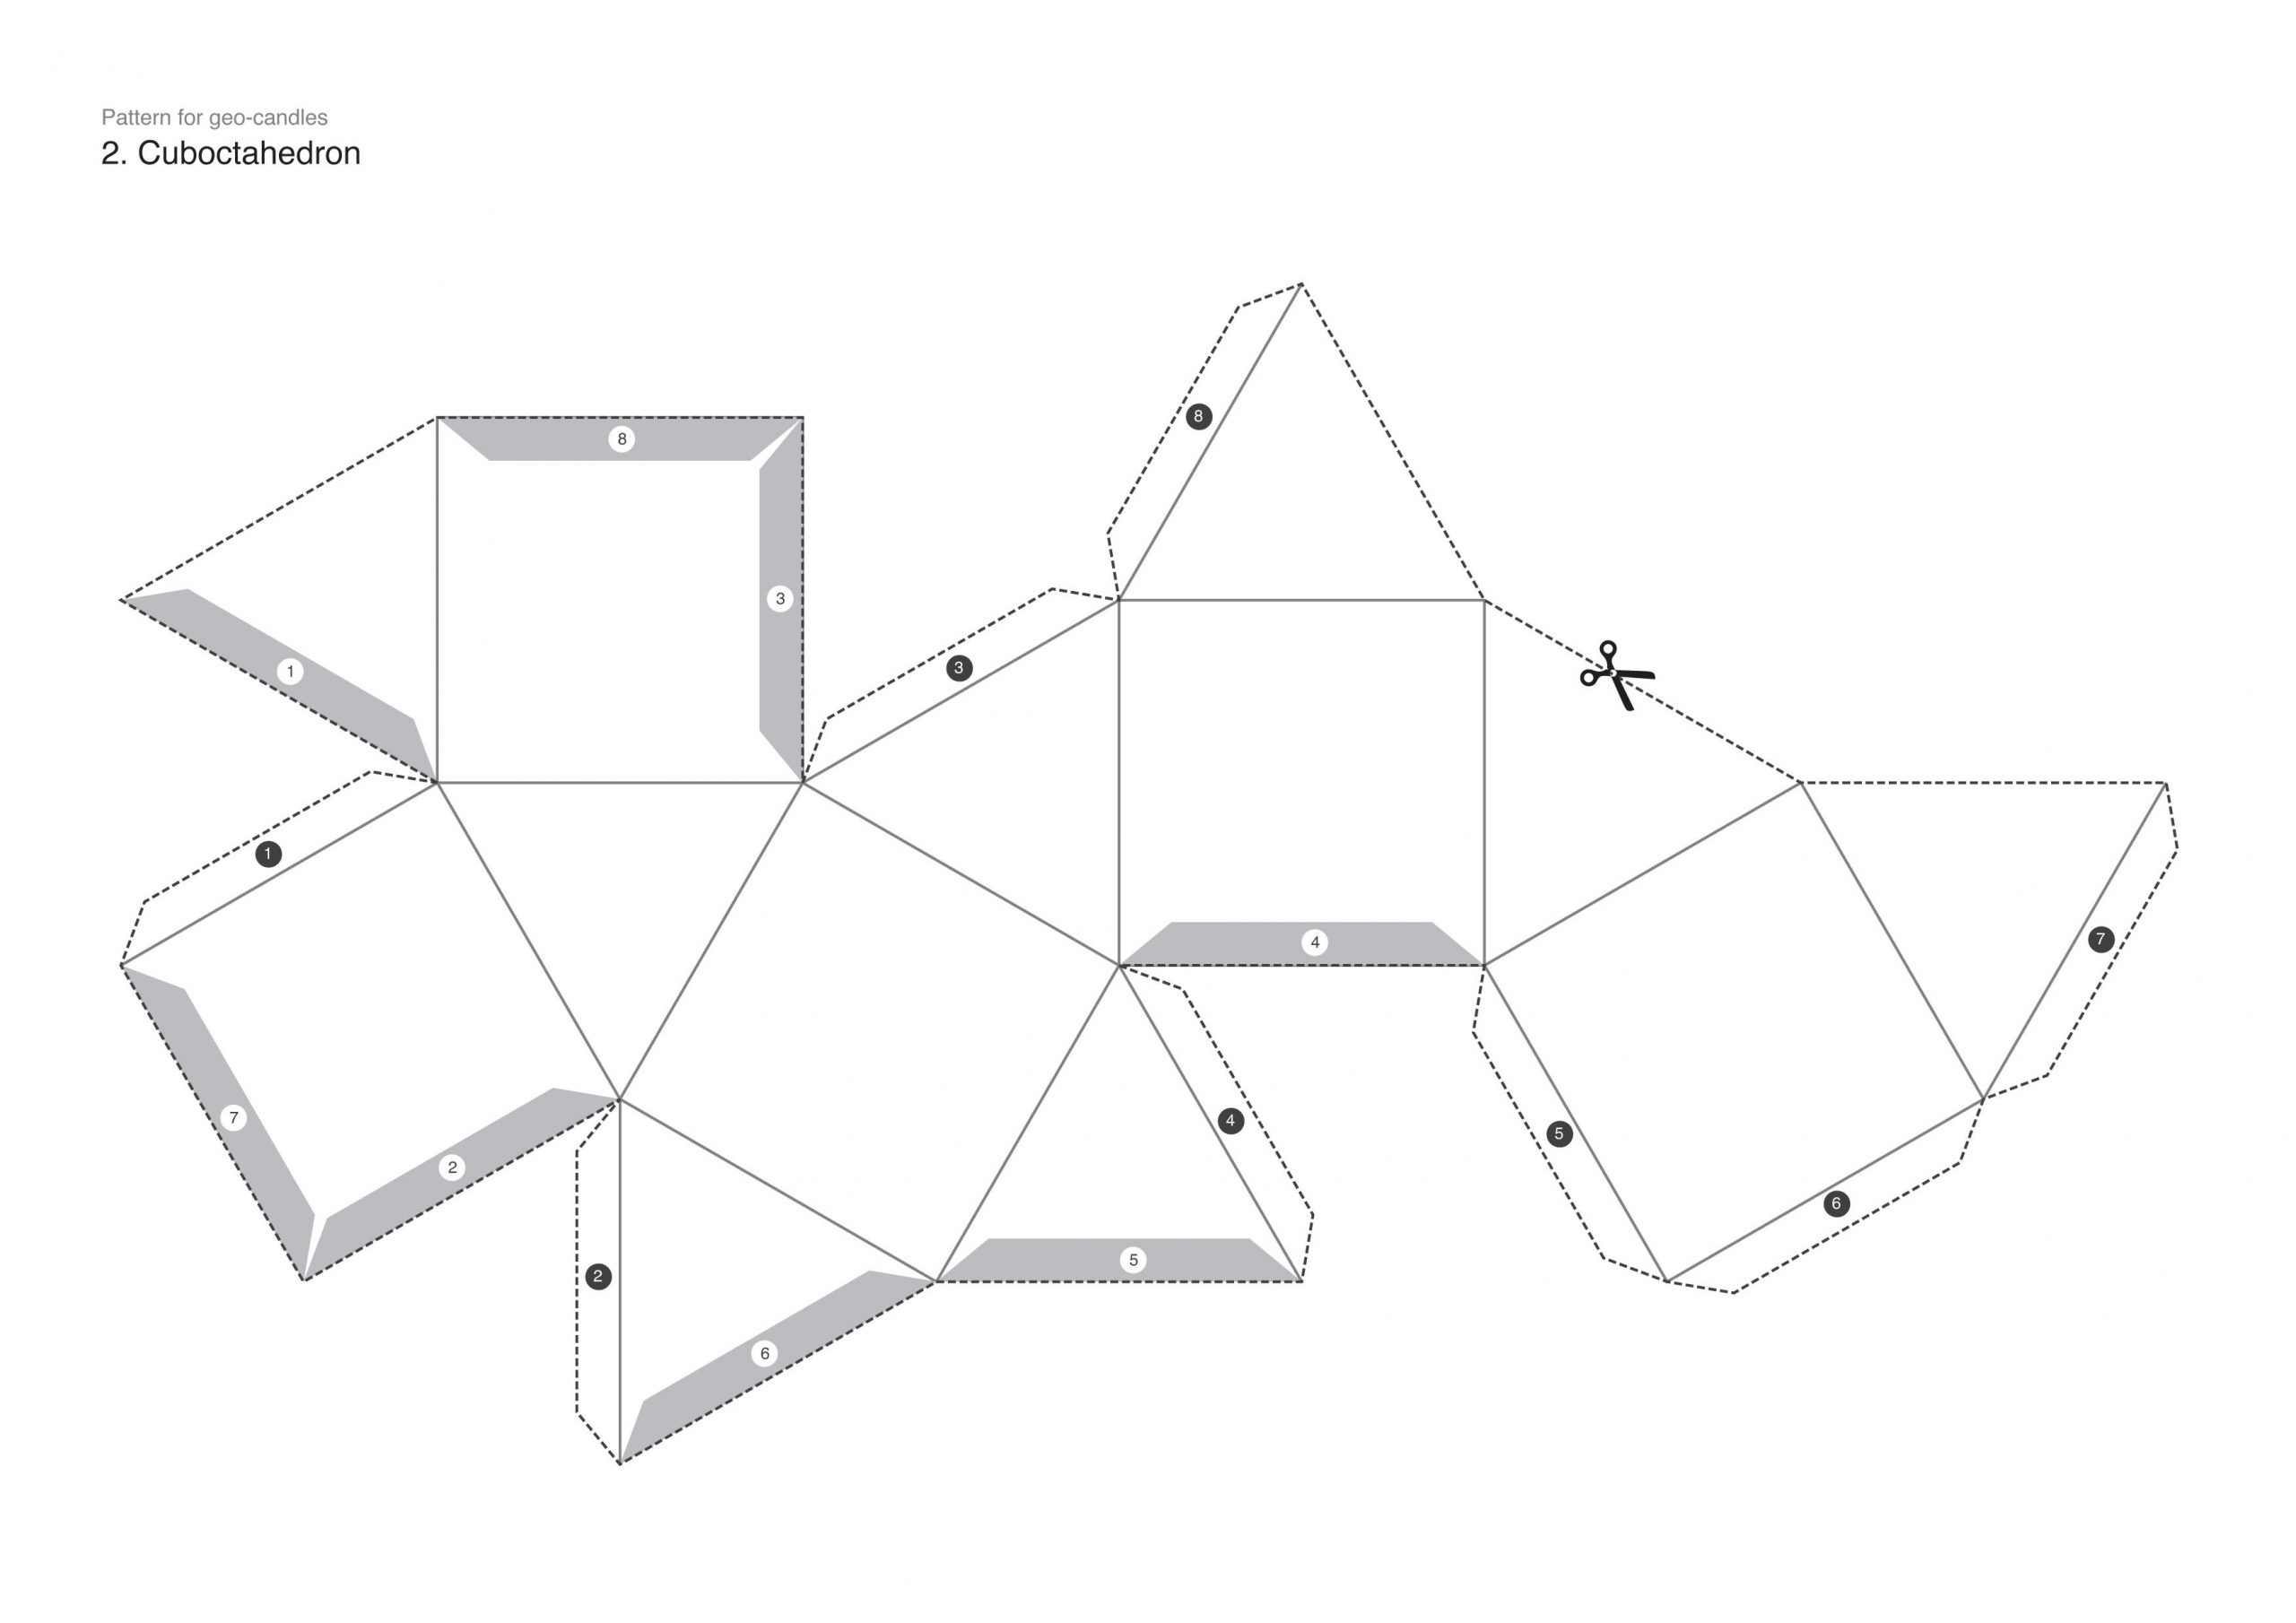 Geometry Template Printable How to Make Faceted Candles